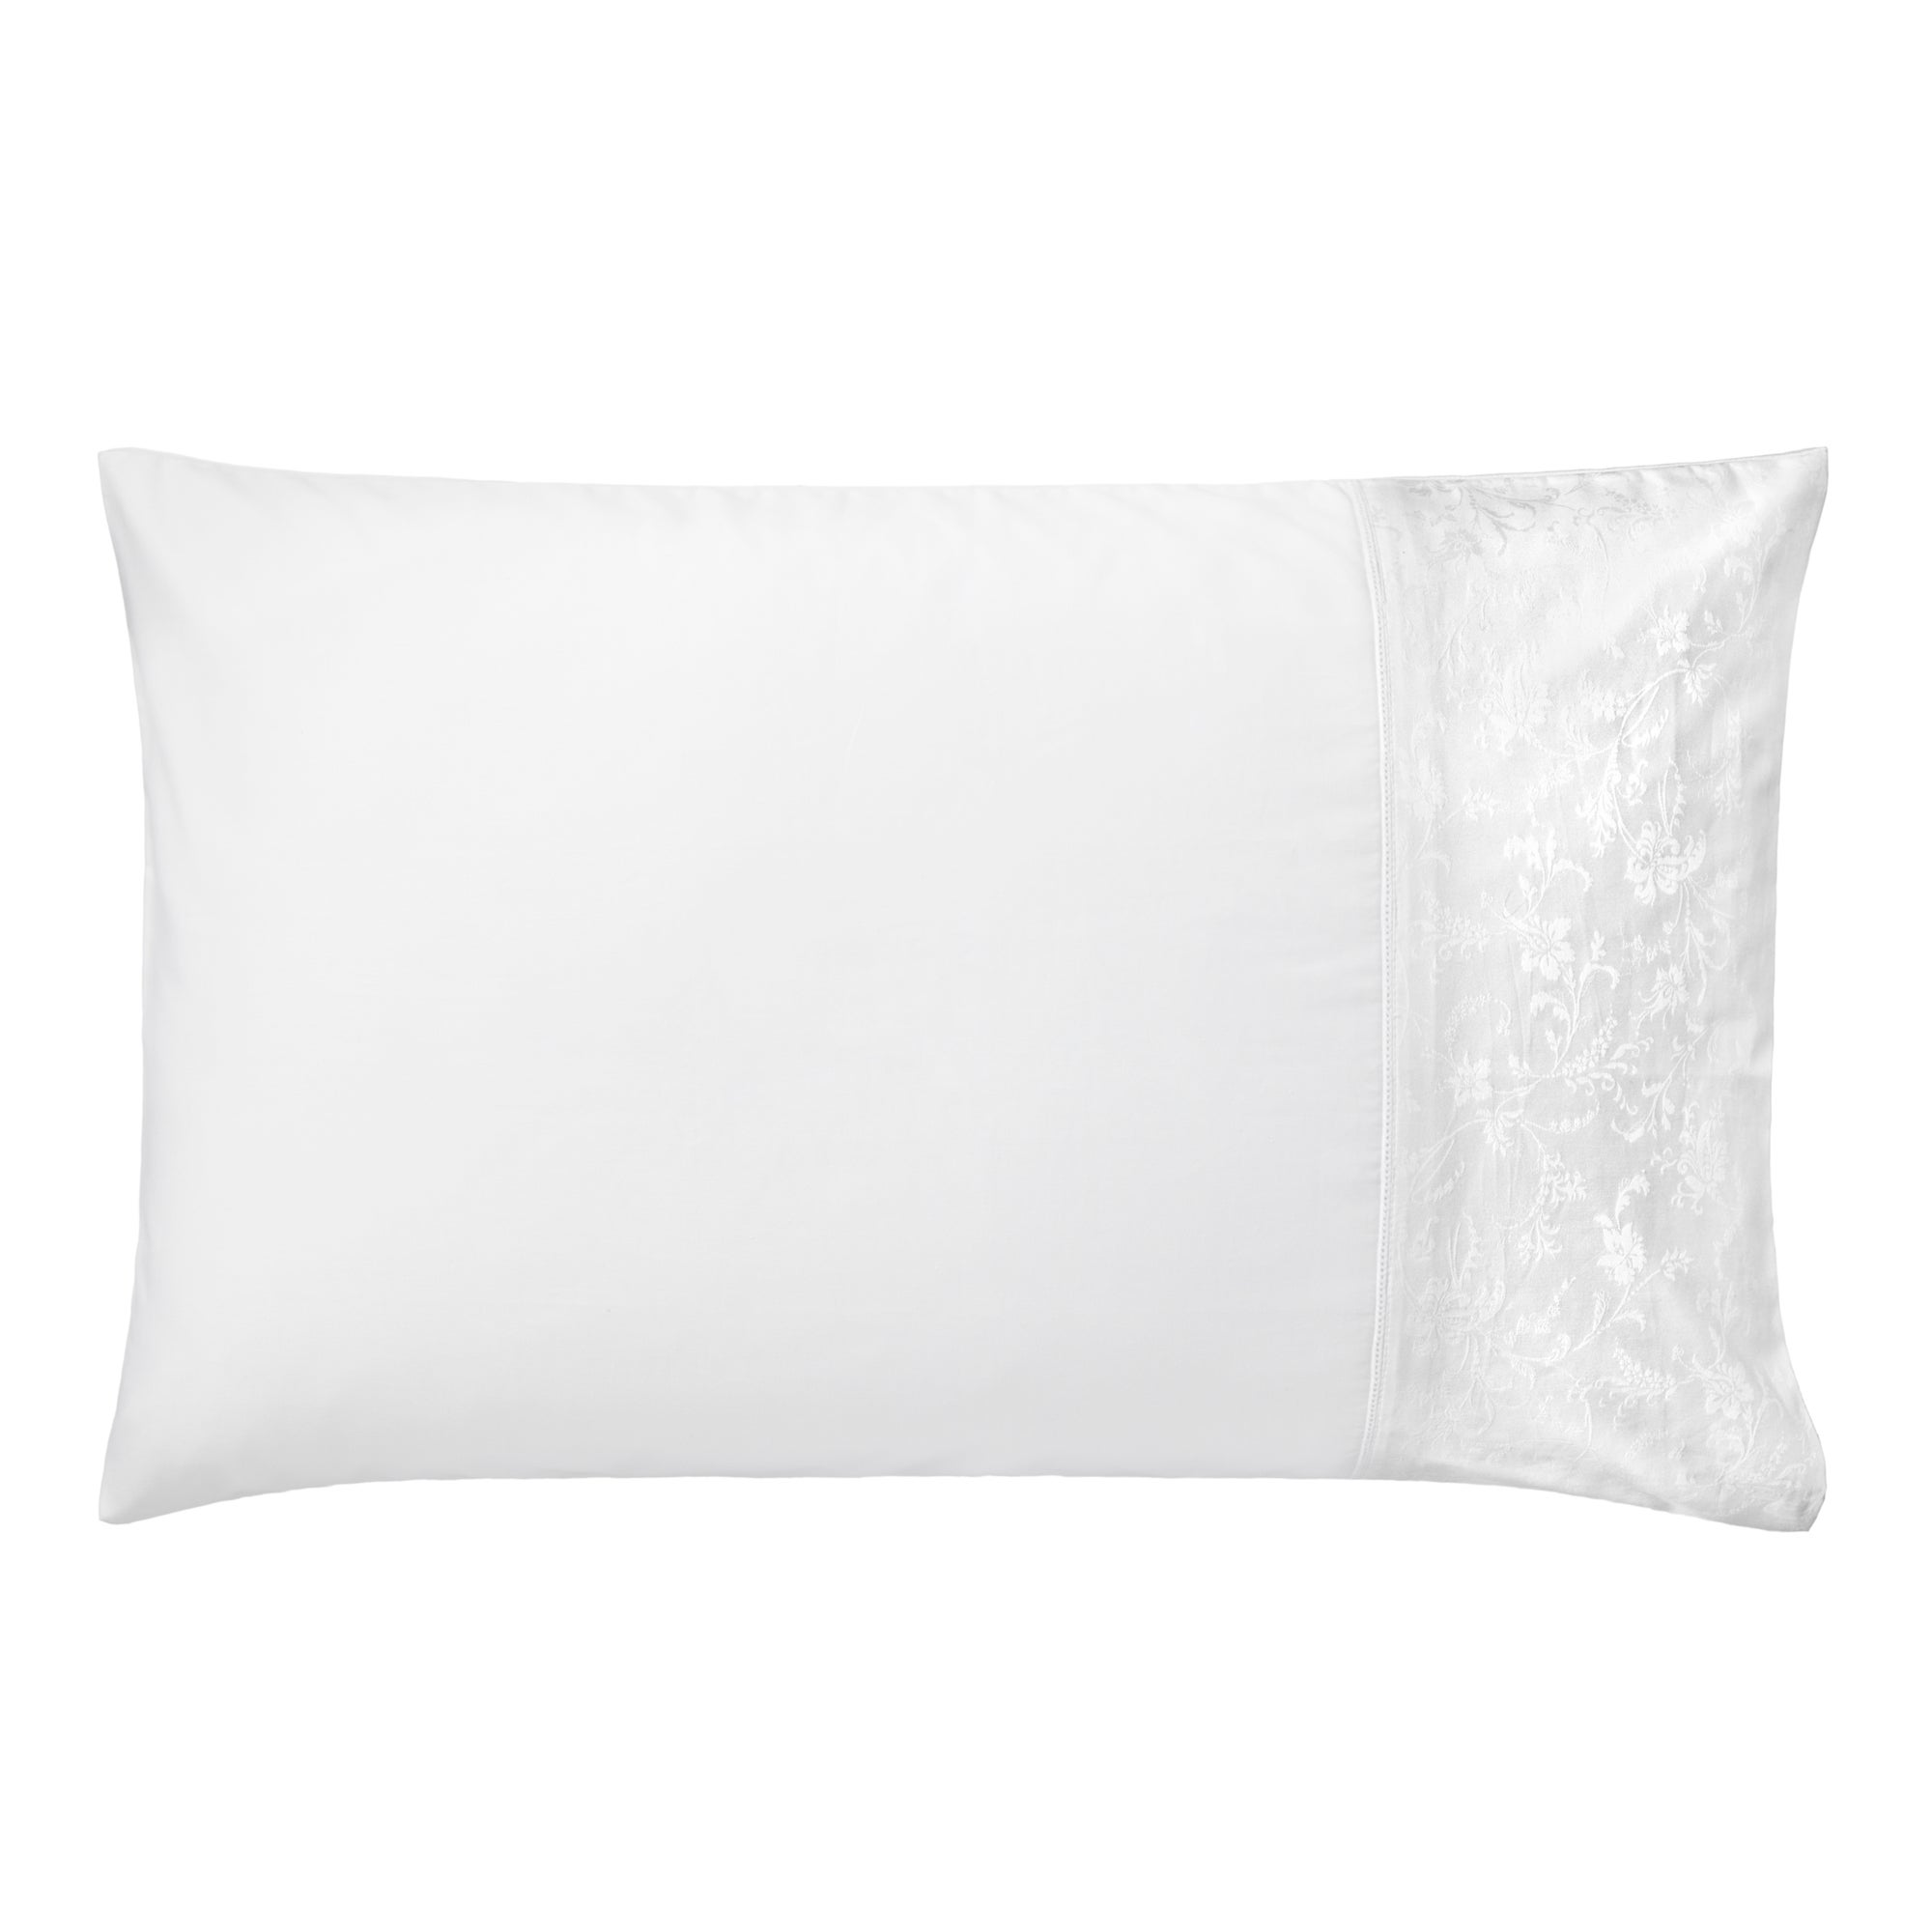 White Hotel Pima Floral 400 Thread Count Collection Cuffed Pillowcase